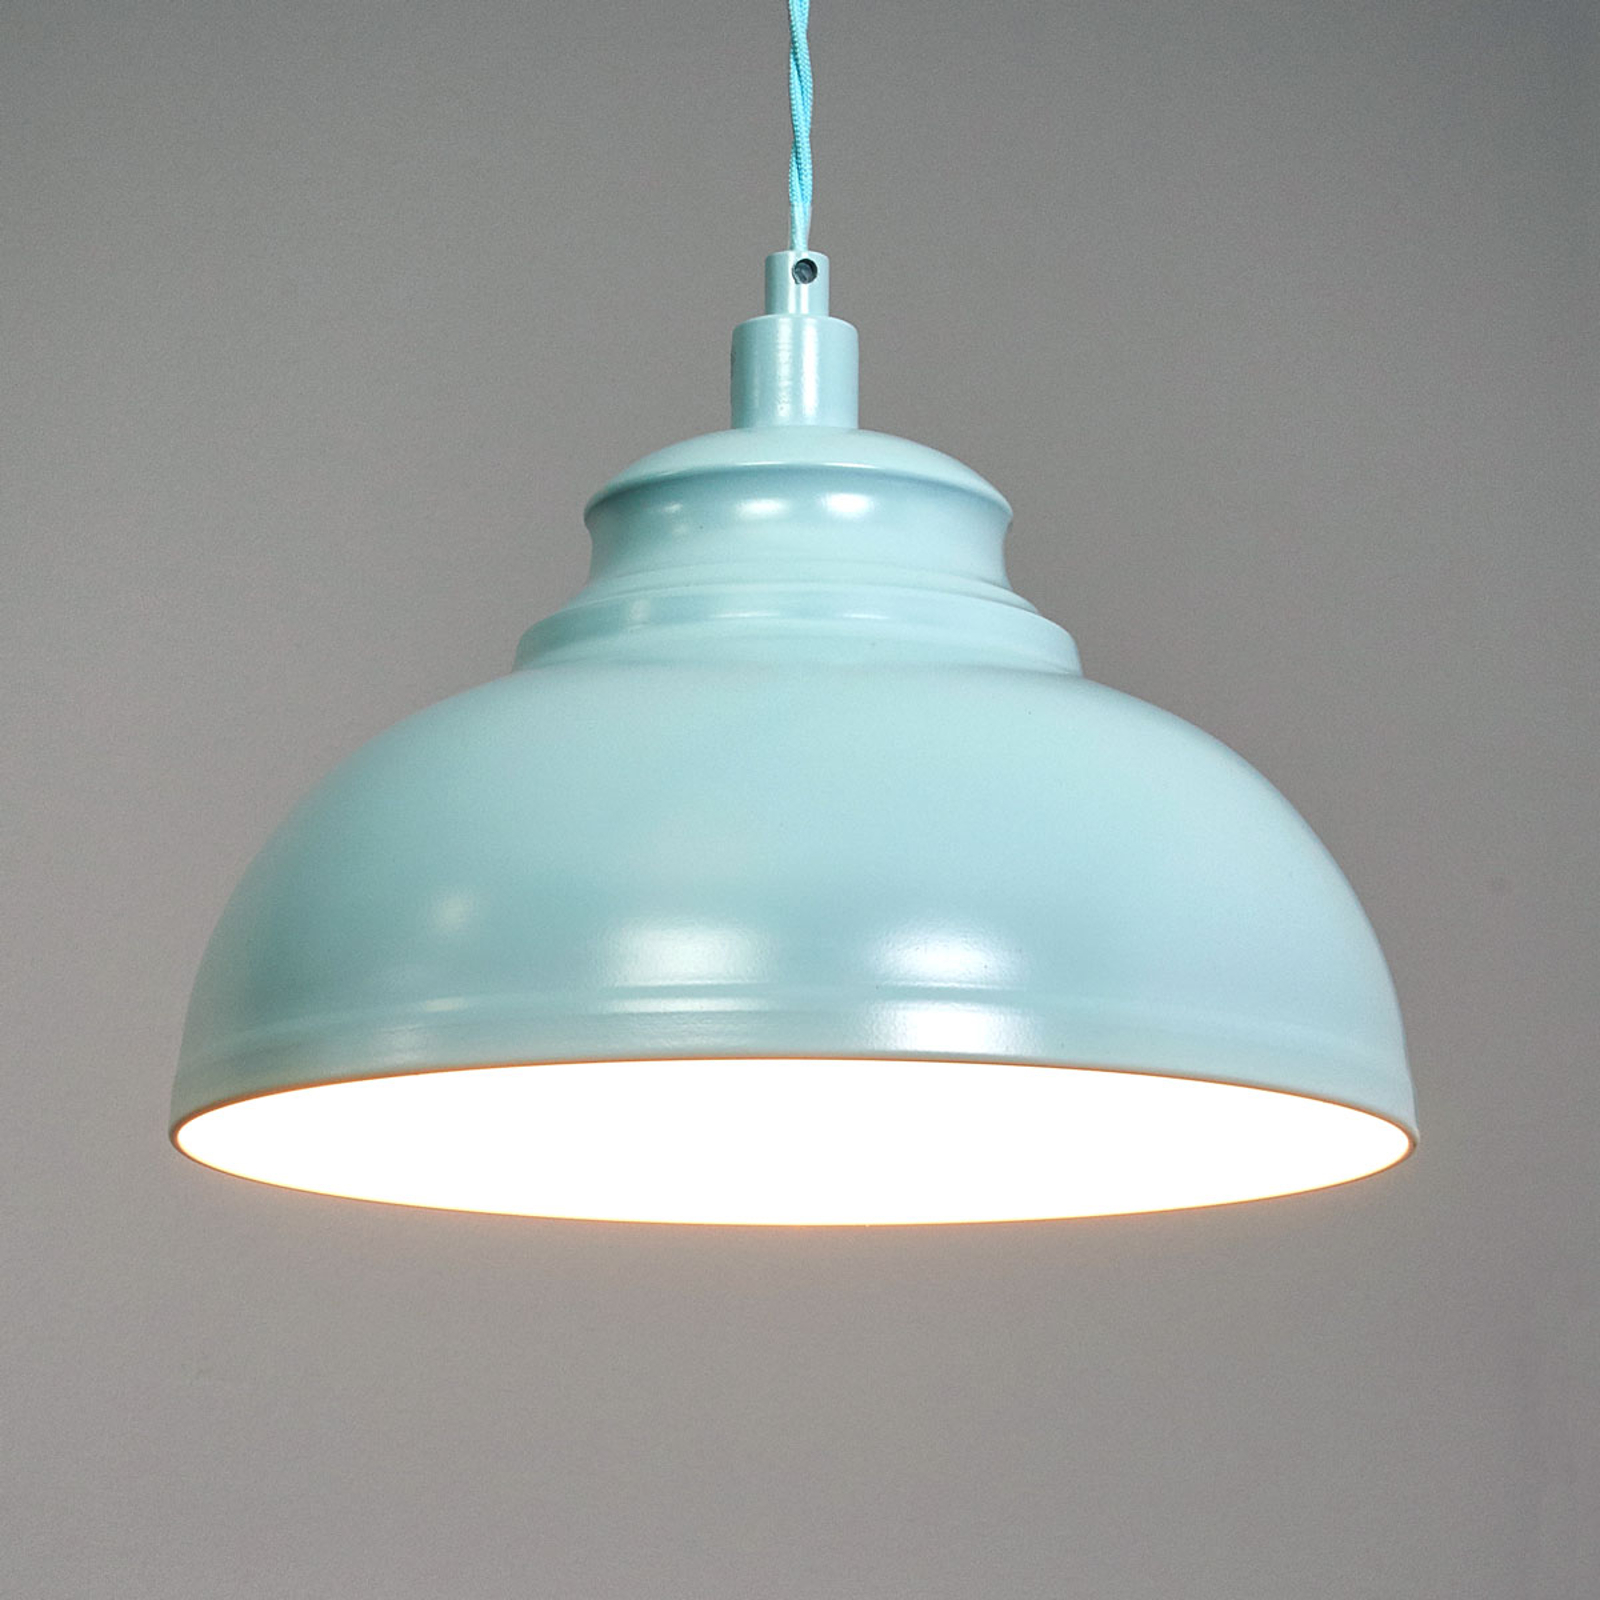 Isla - a hanging light in a soft blue colour_6054992_1